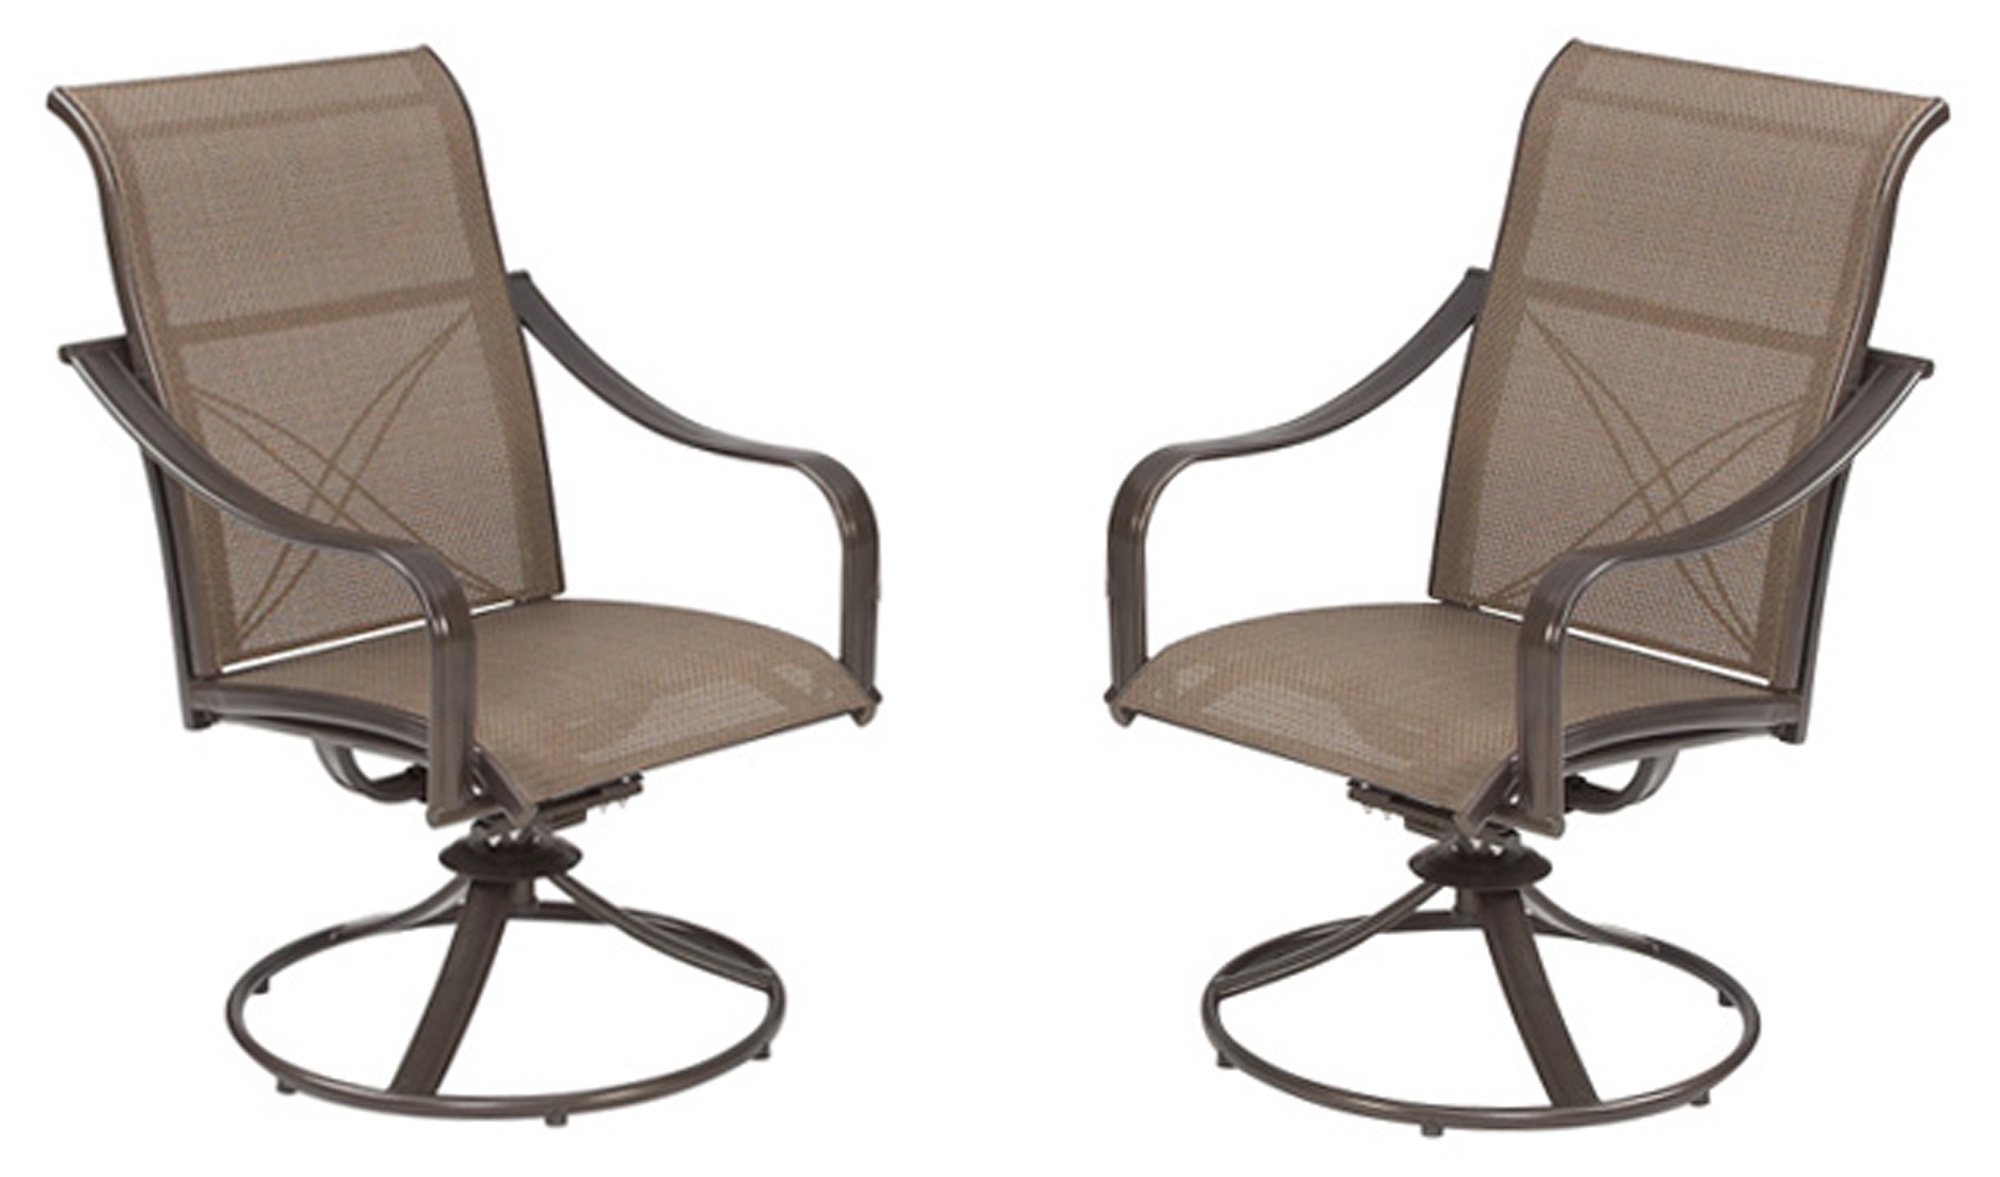 Casual Living Worldwide Recalls Swivel Patio Chairs Due To Fall Hazard;  Sold Exclusively At Home Depot | CPSC.gov